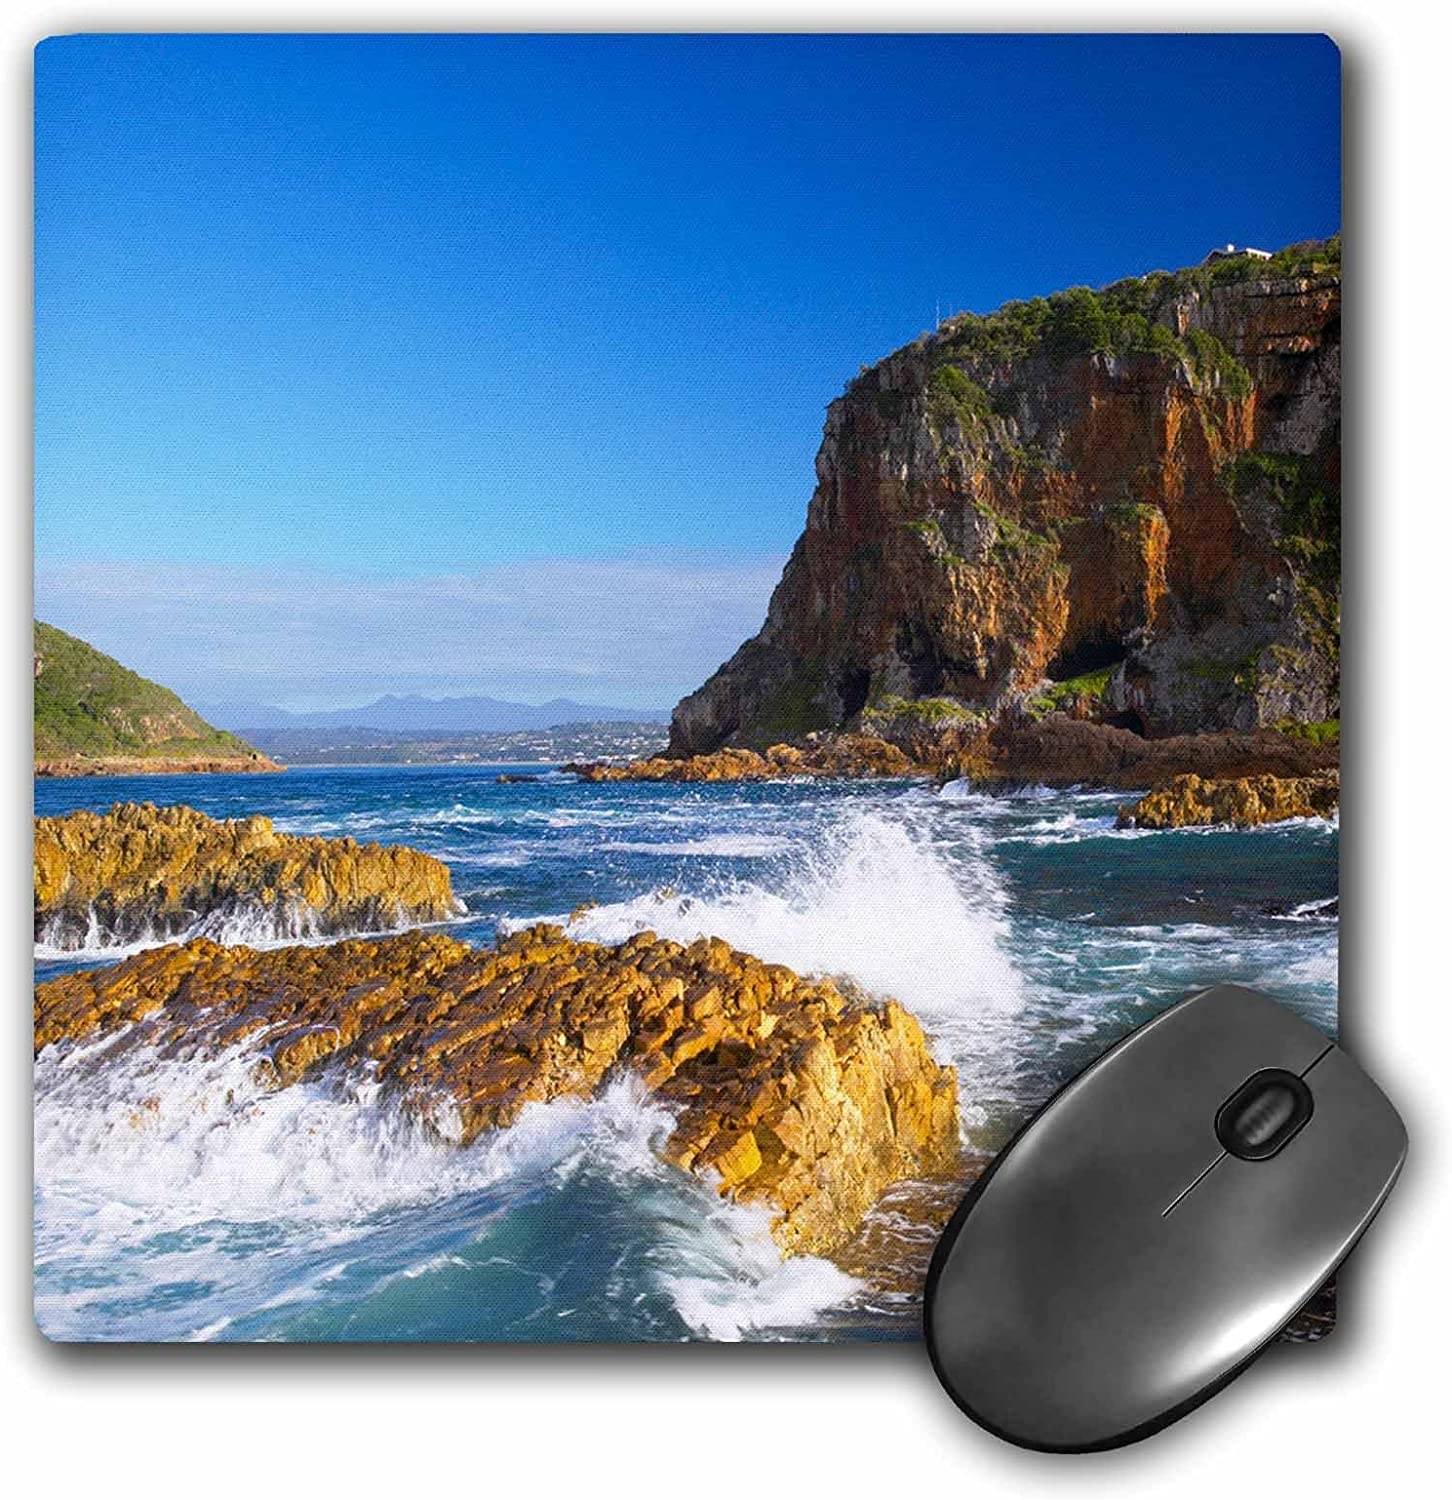 Knysna Heads, Garden Route, Western Cape, South Africa. - Mouse Pad, 8 by 8 inches (mp_207996_1)